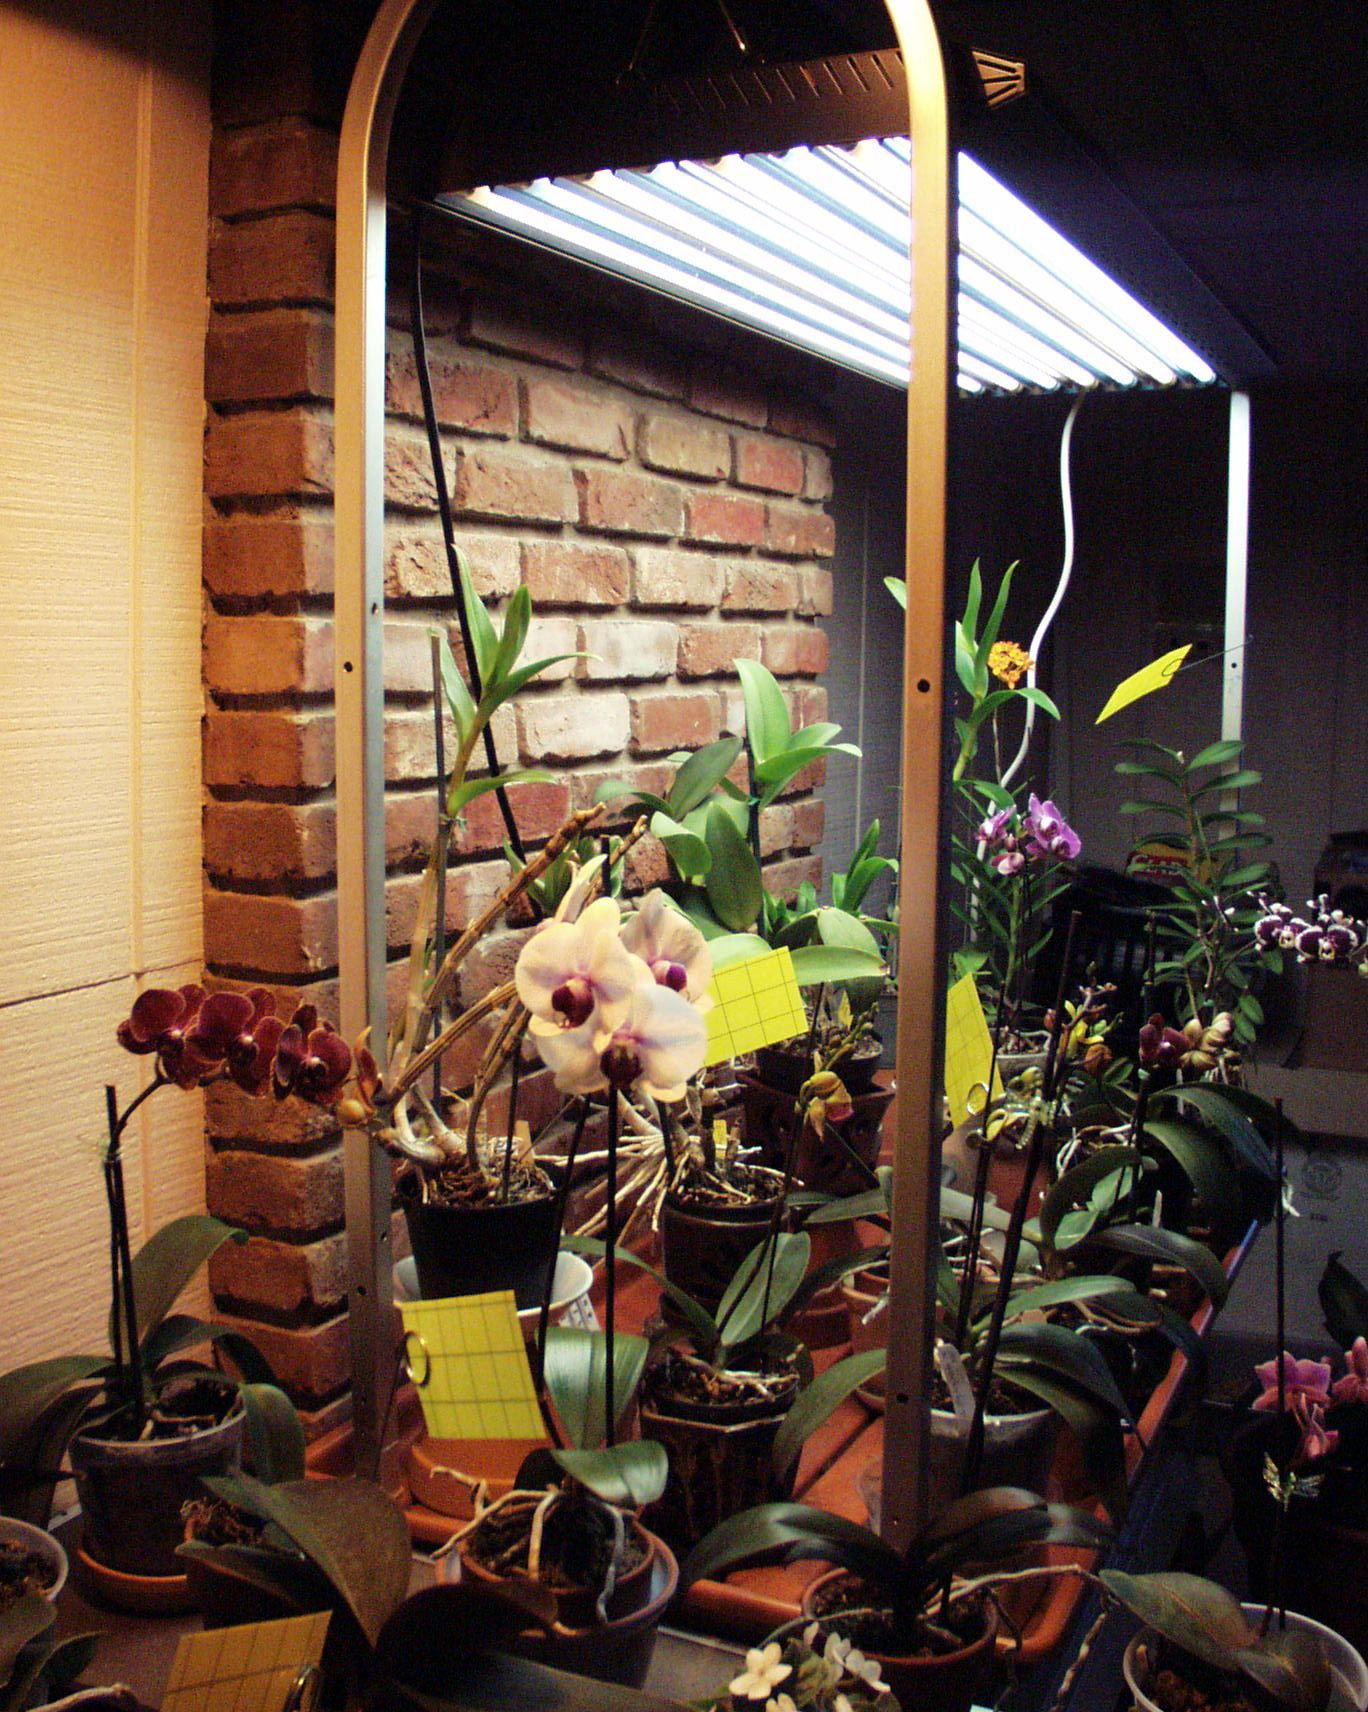 Orchid Collection Under T5 High Output Fluorescent Grow